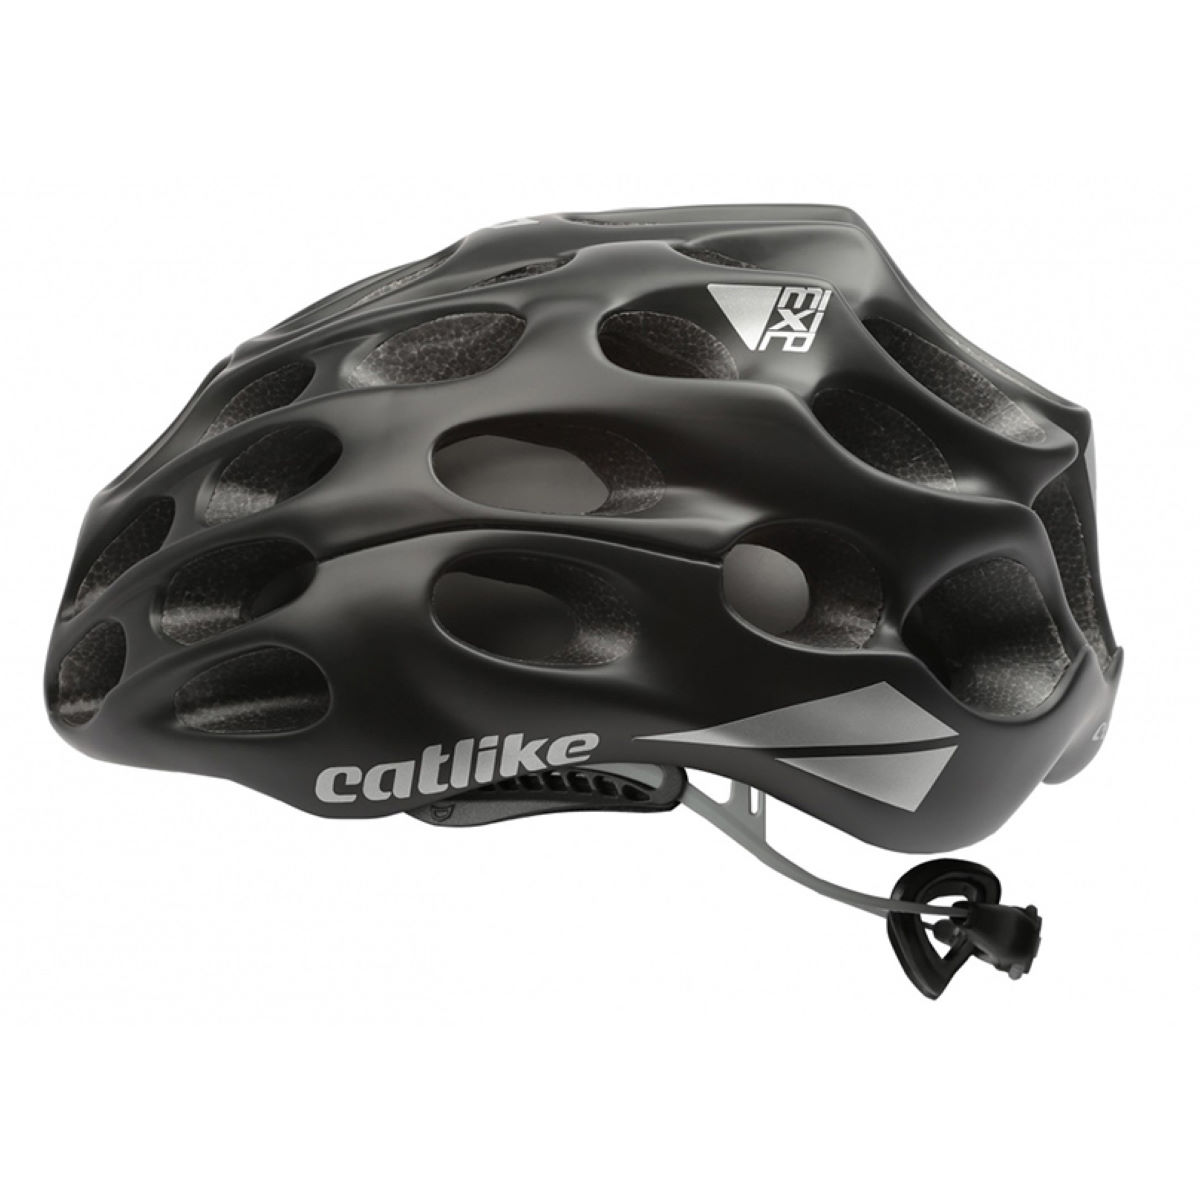 Casque de route Catlike Mixino - Small Matt Black Decal